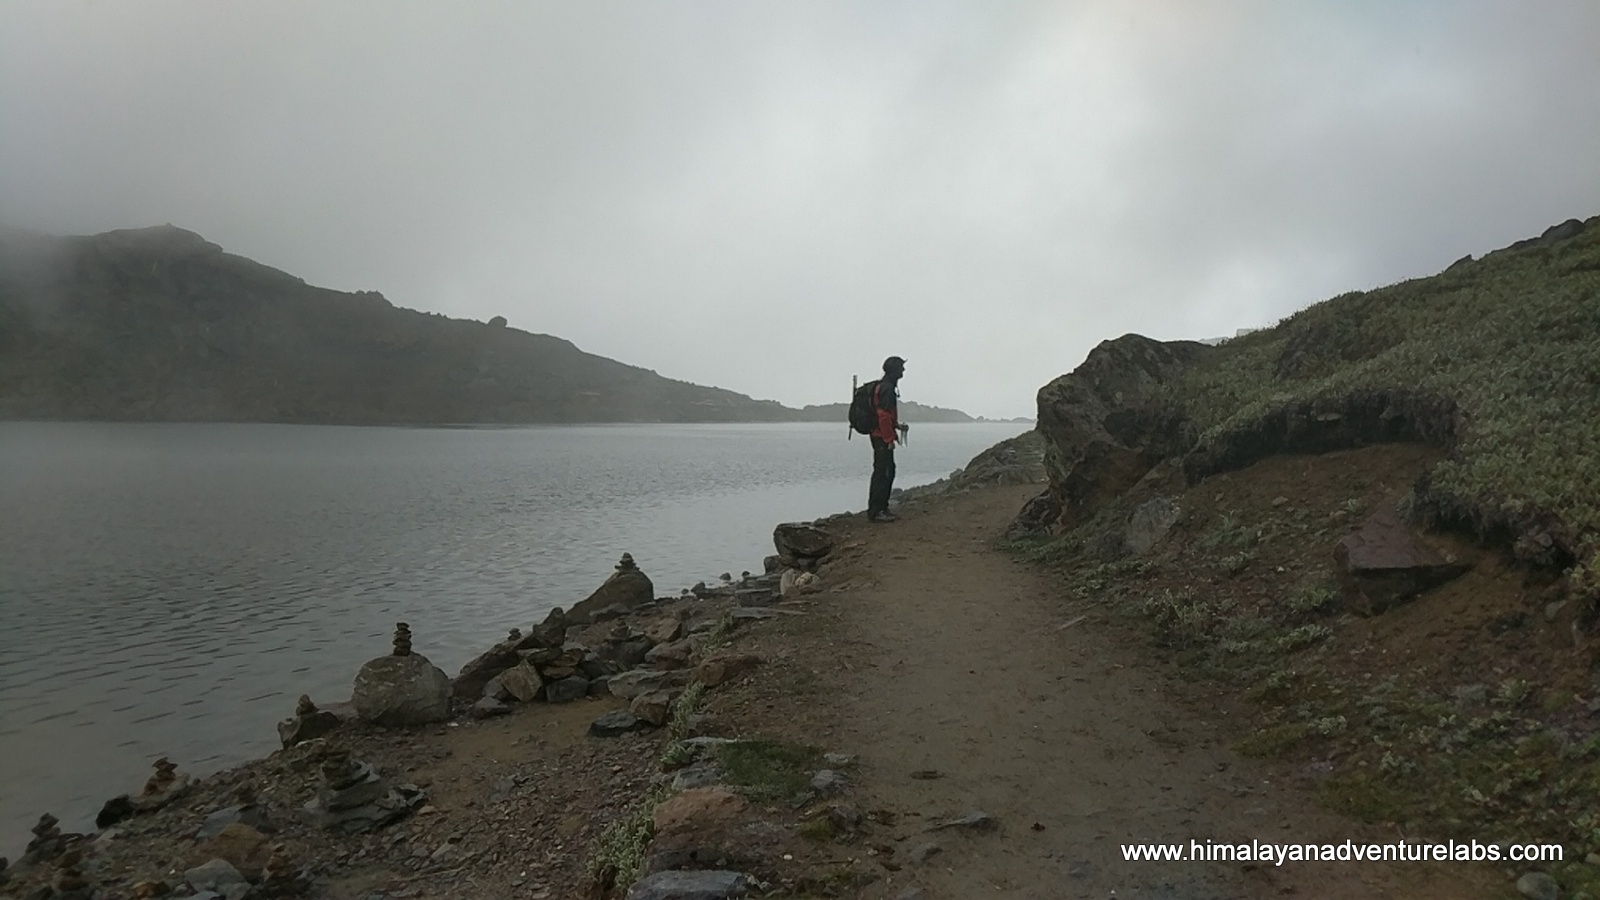 That's Jason at Gosaikund Lake - he gives me cookies. Legend says the Lord Shiva made this lake, so I am staying out of it!